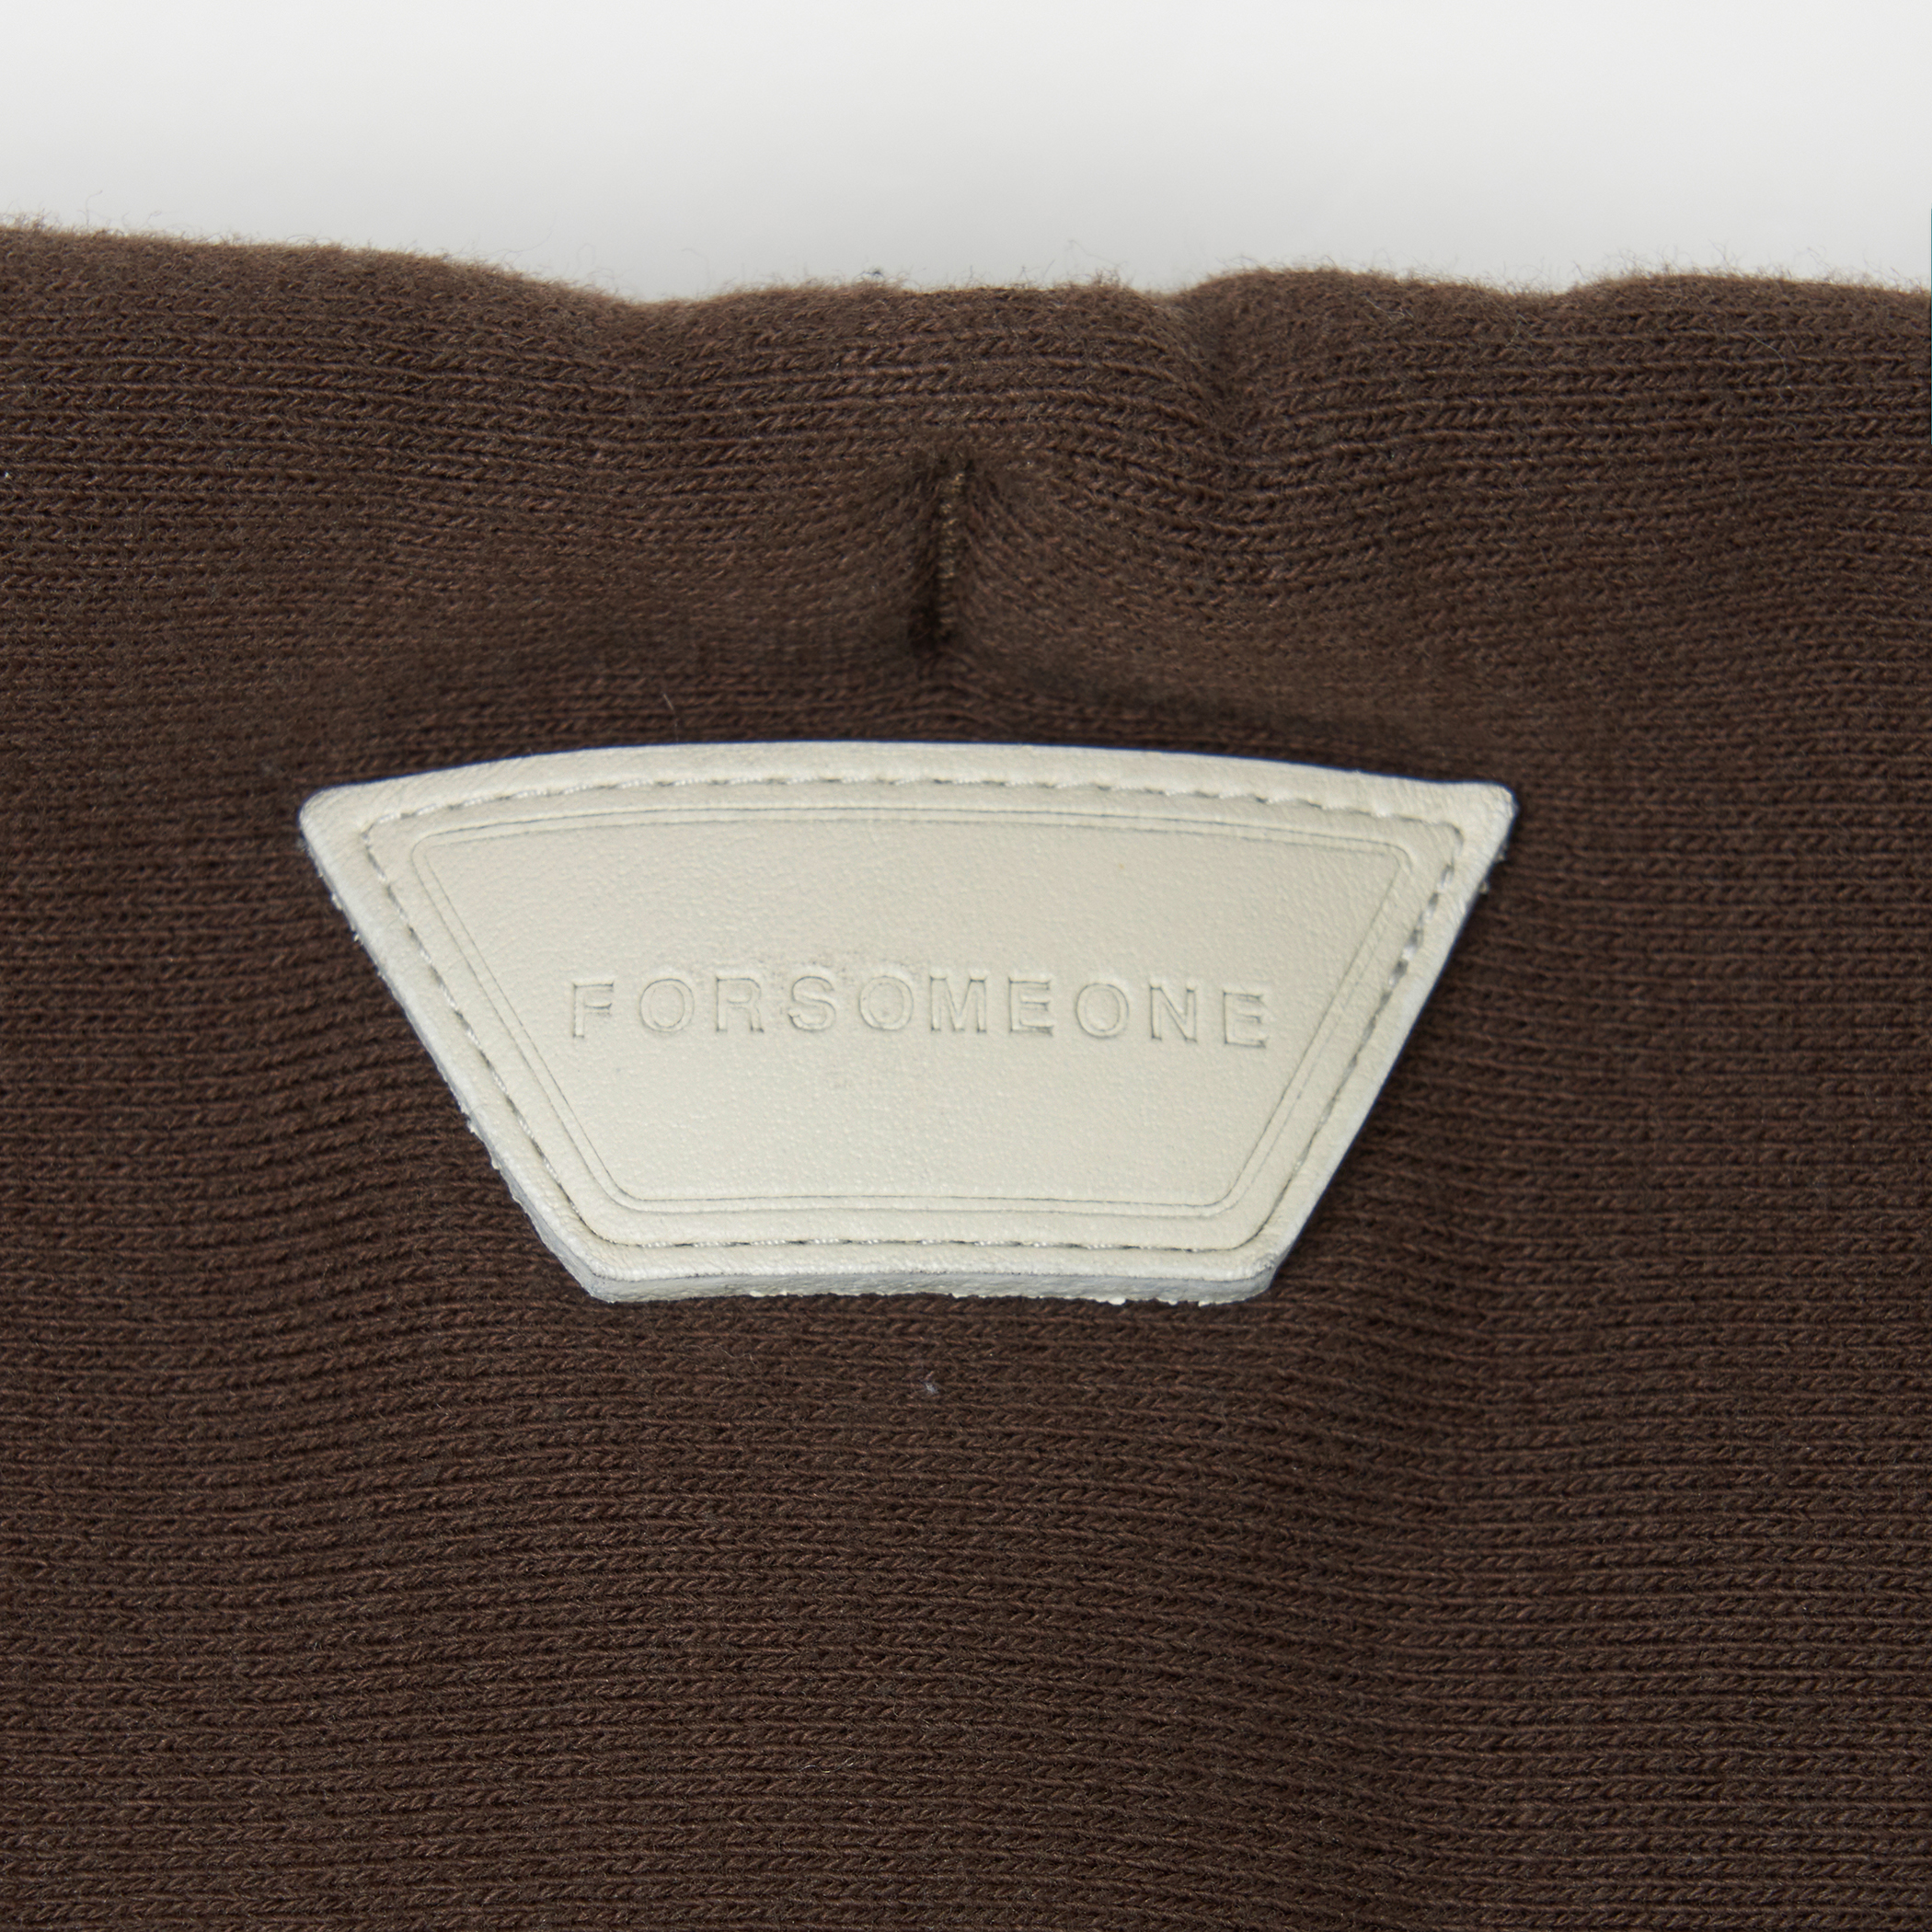 FSO EMBRO HOODIE 詳細画像 Brown 12